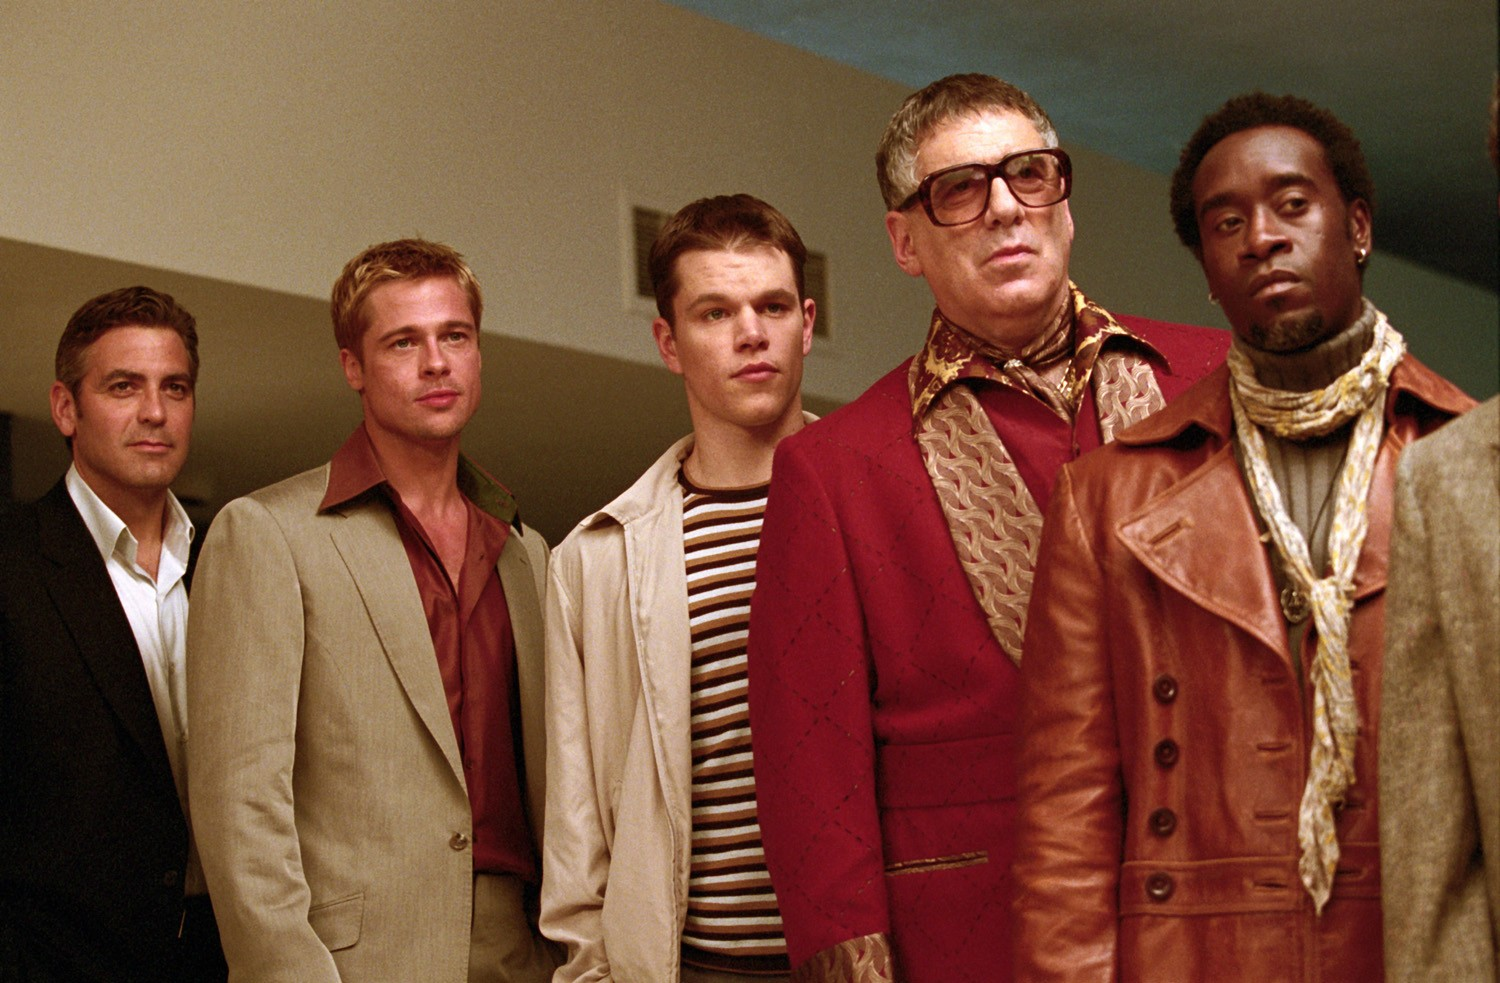 Brad Pitt,Don Cheadle,Elliott Gould,George Clooney,Matt Damon